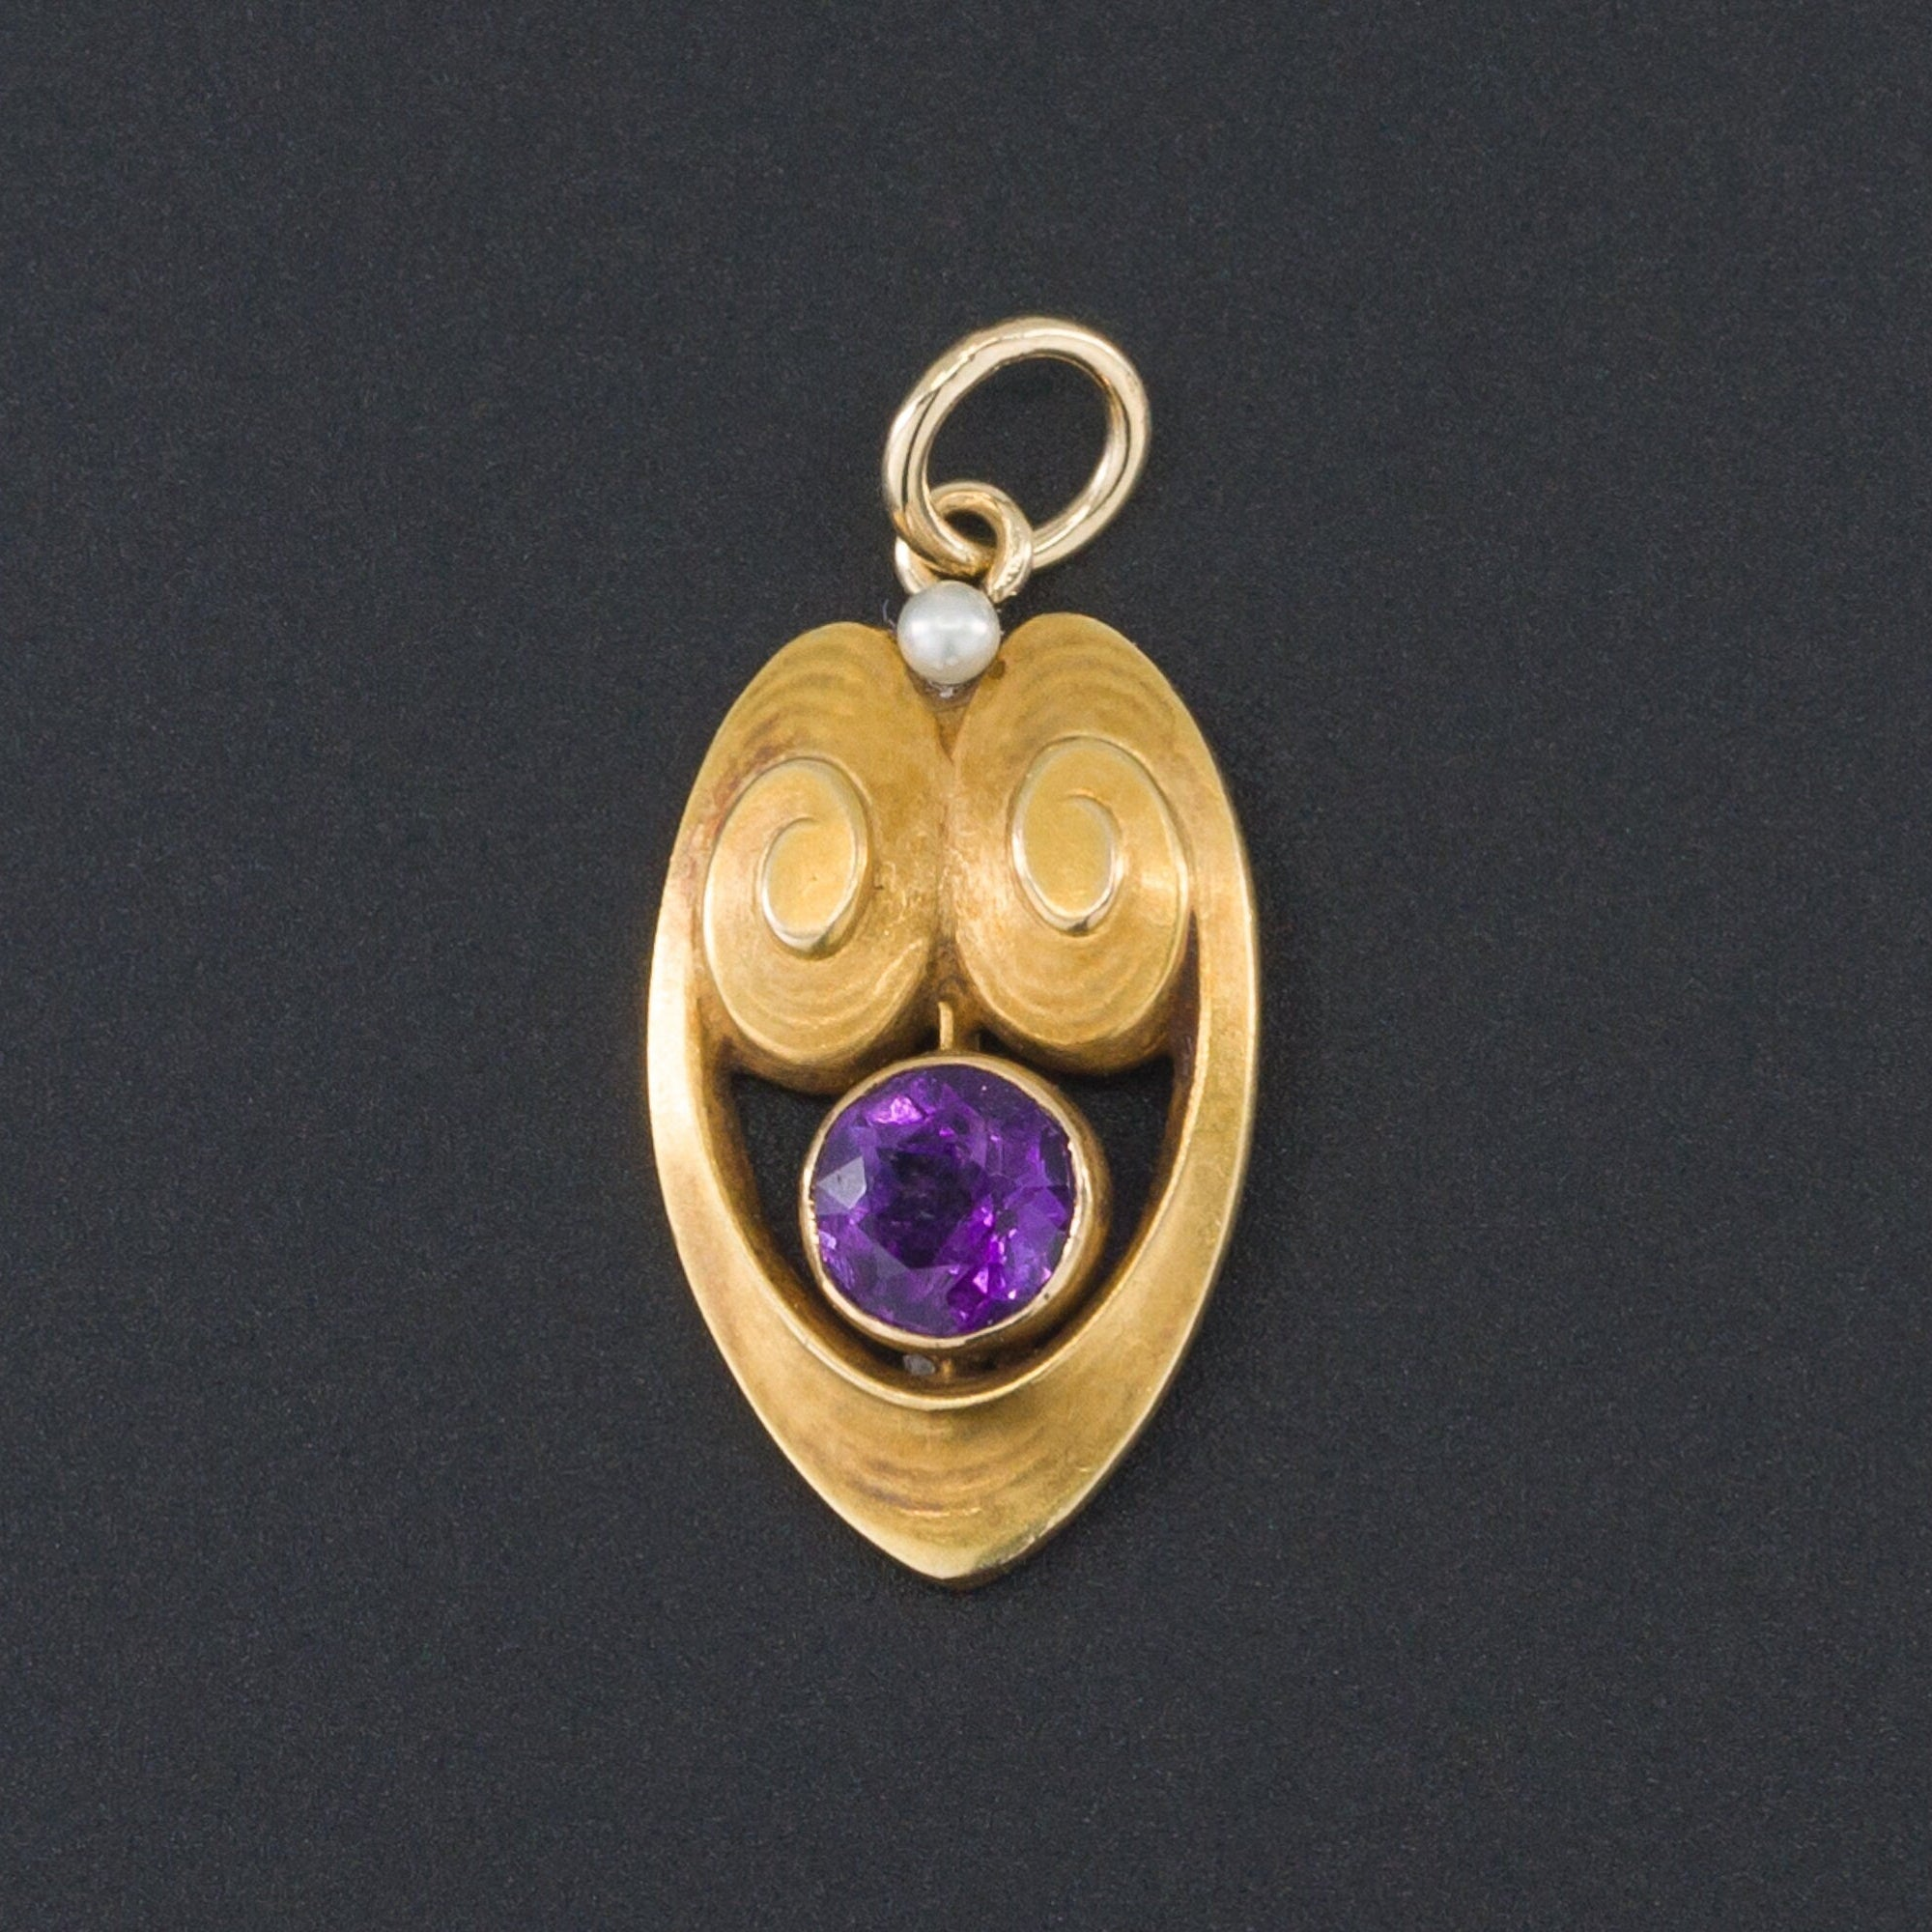 Amethyst Charm | Antique Pin Conversion Pendant | 14k Gold & Amethyst Charm | Art Nouveau Pendant | Amethyst and Pearl Charm